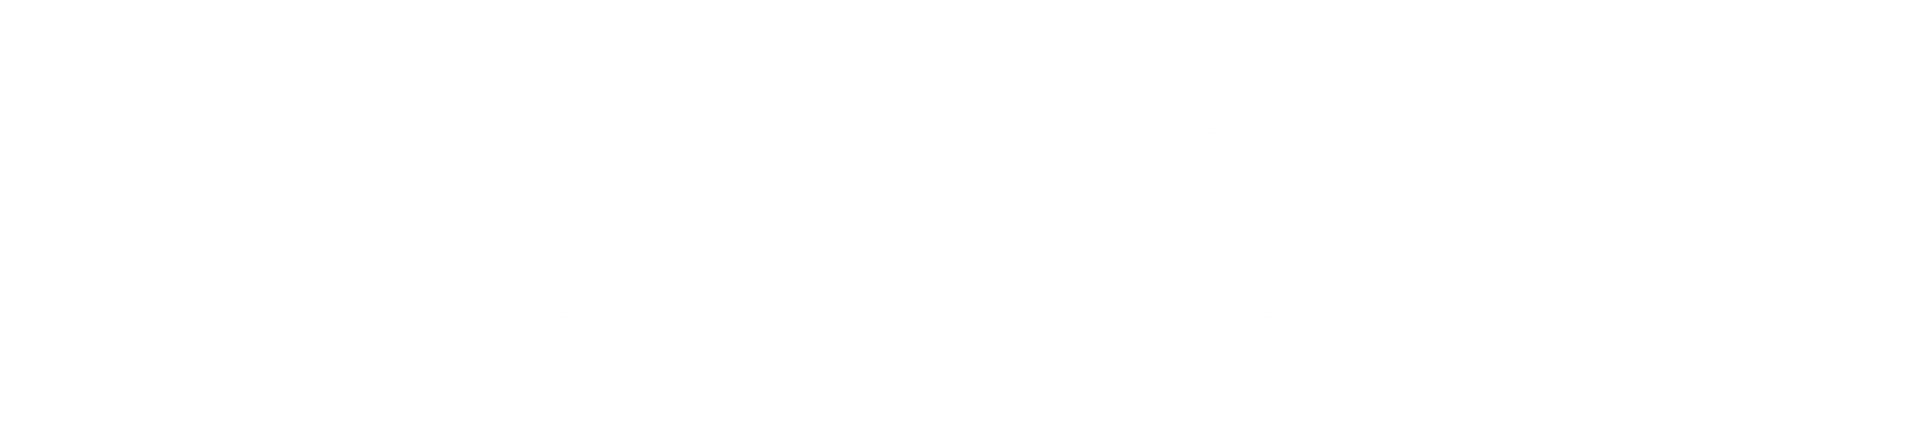 Royal Realty Services